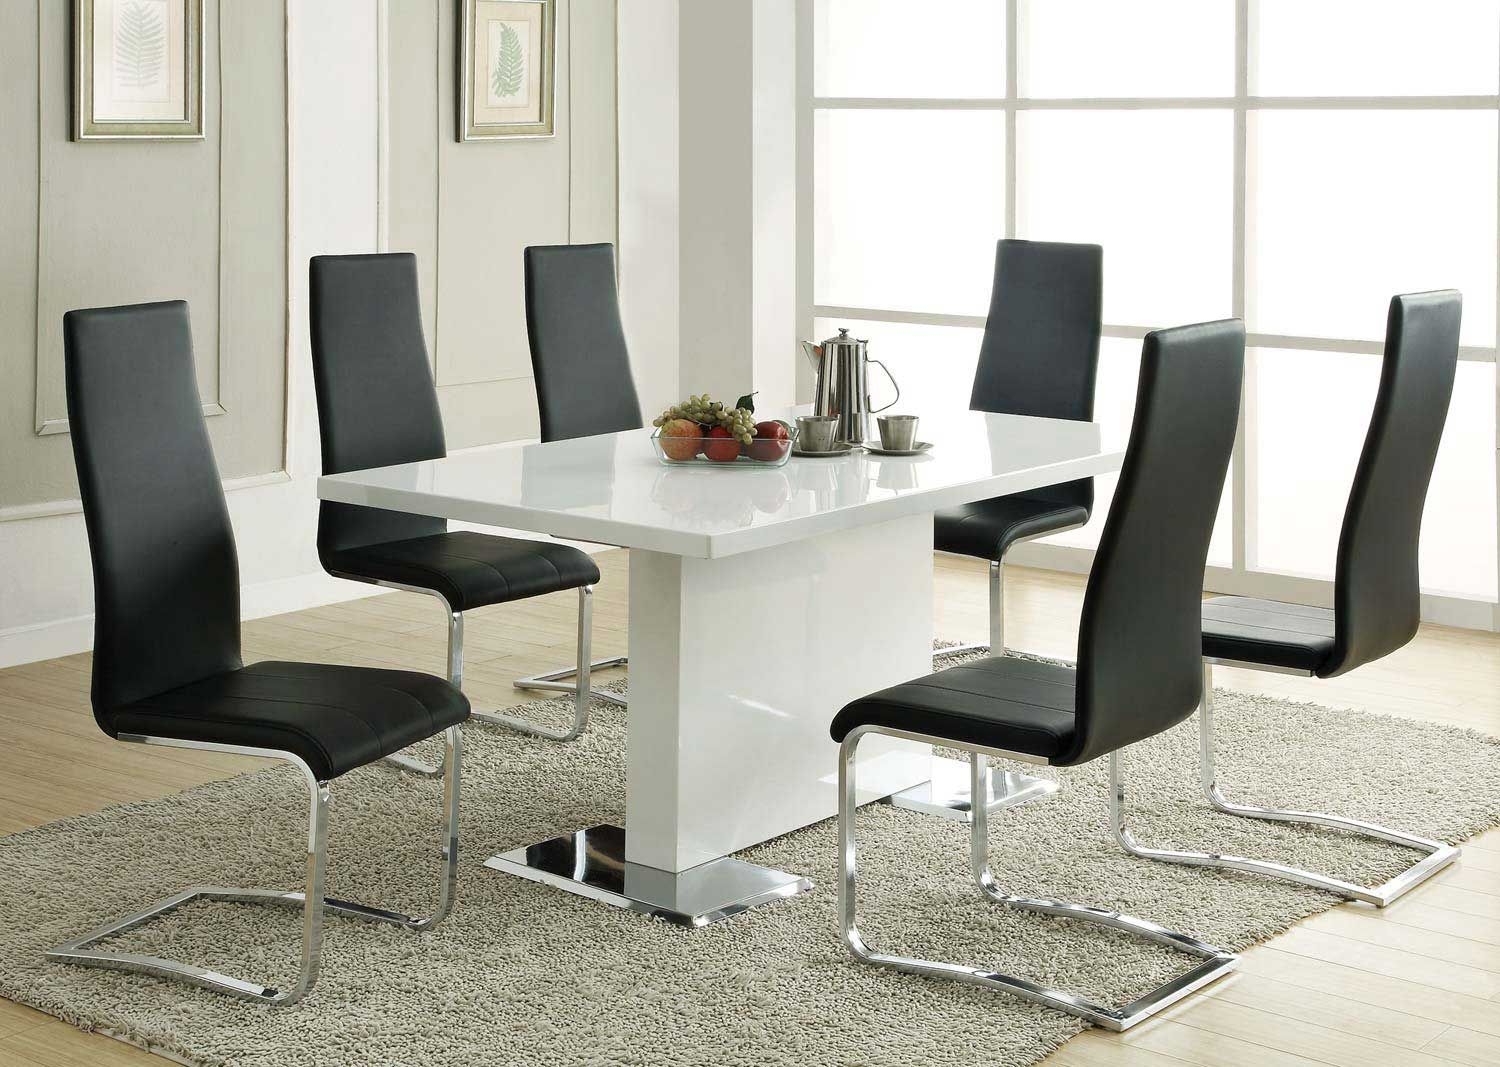 Coaster Mix Match White Dining Set Black Chair With Images